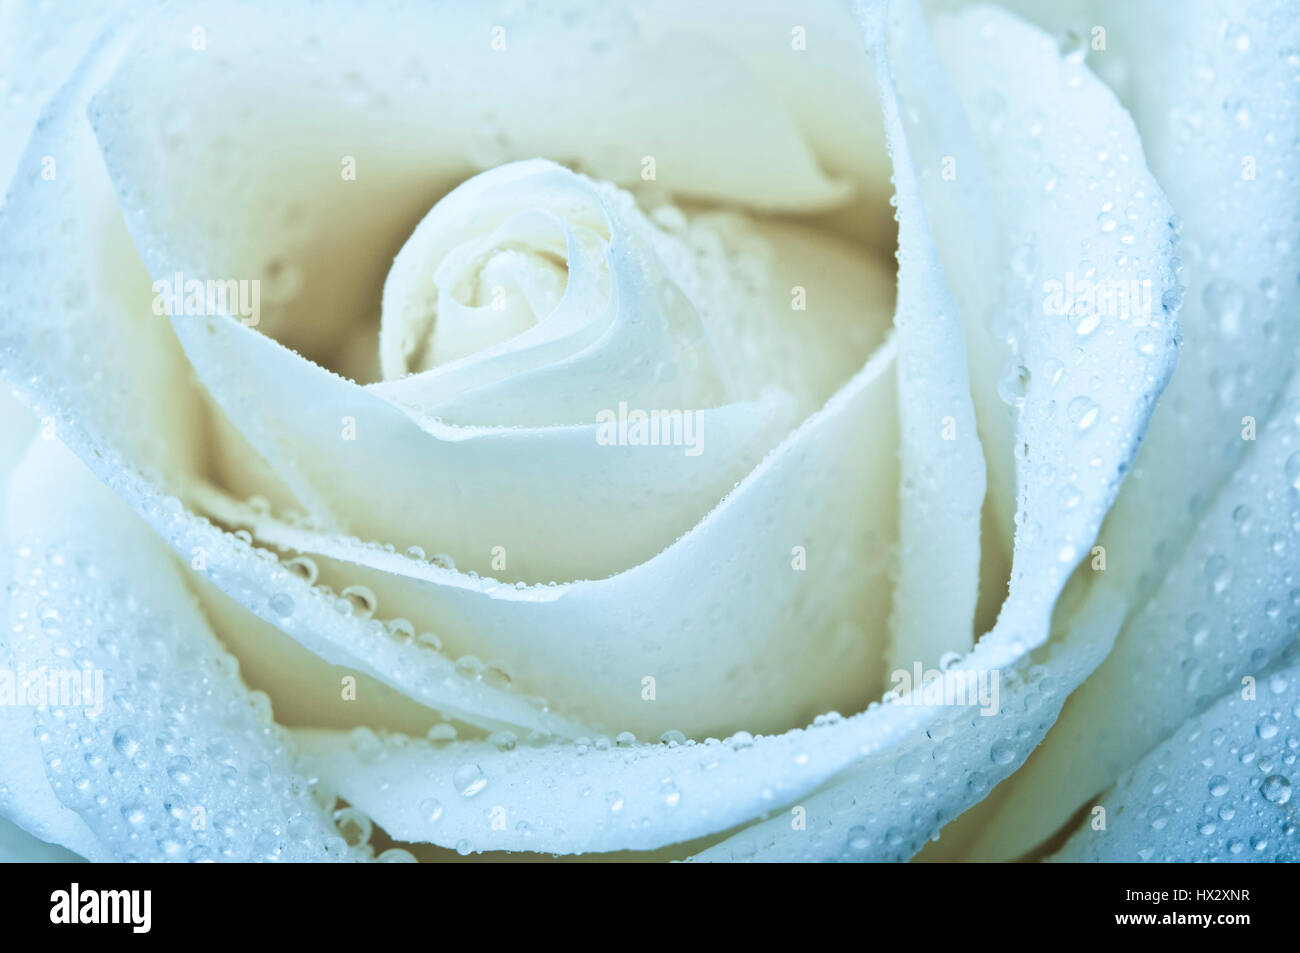 white rose macro with drops of water on petals - Stock Image